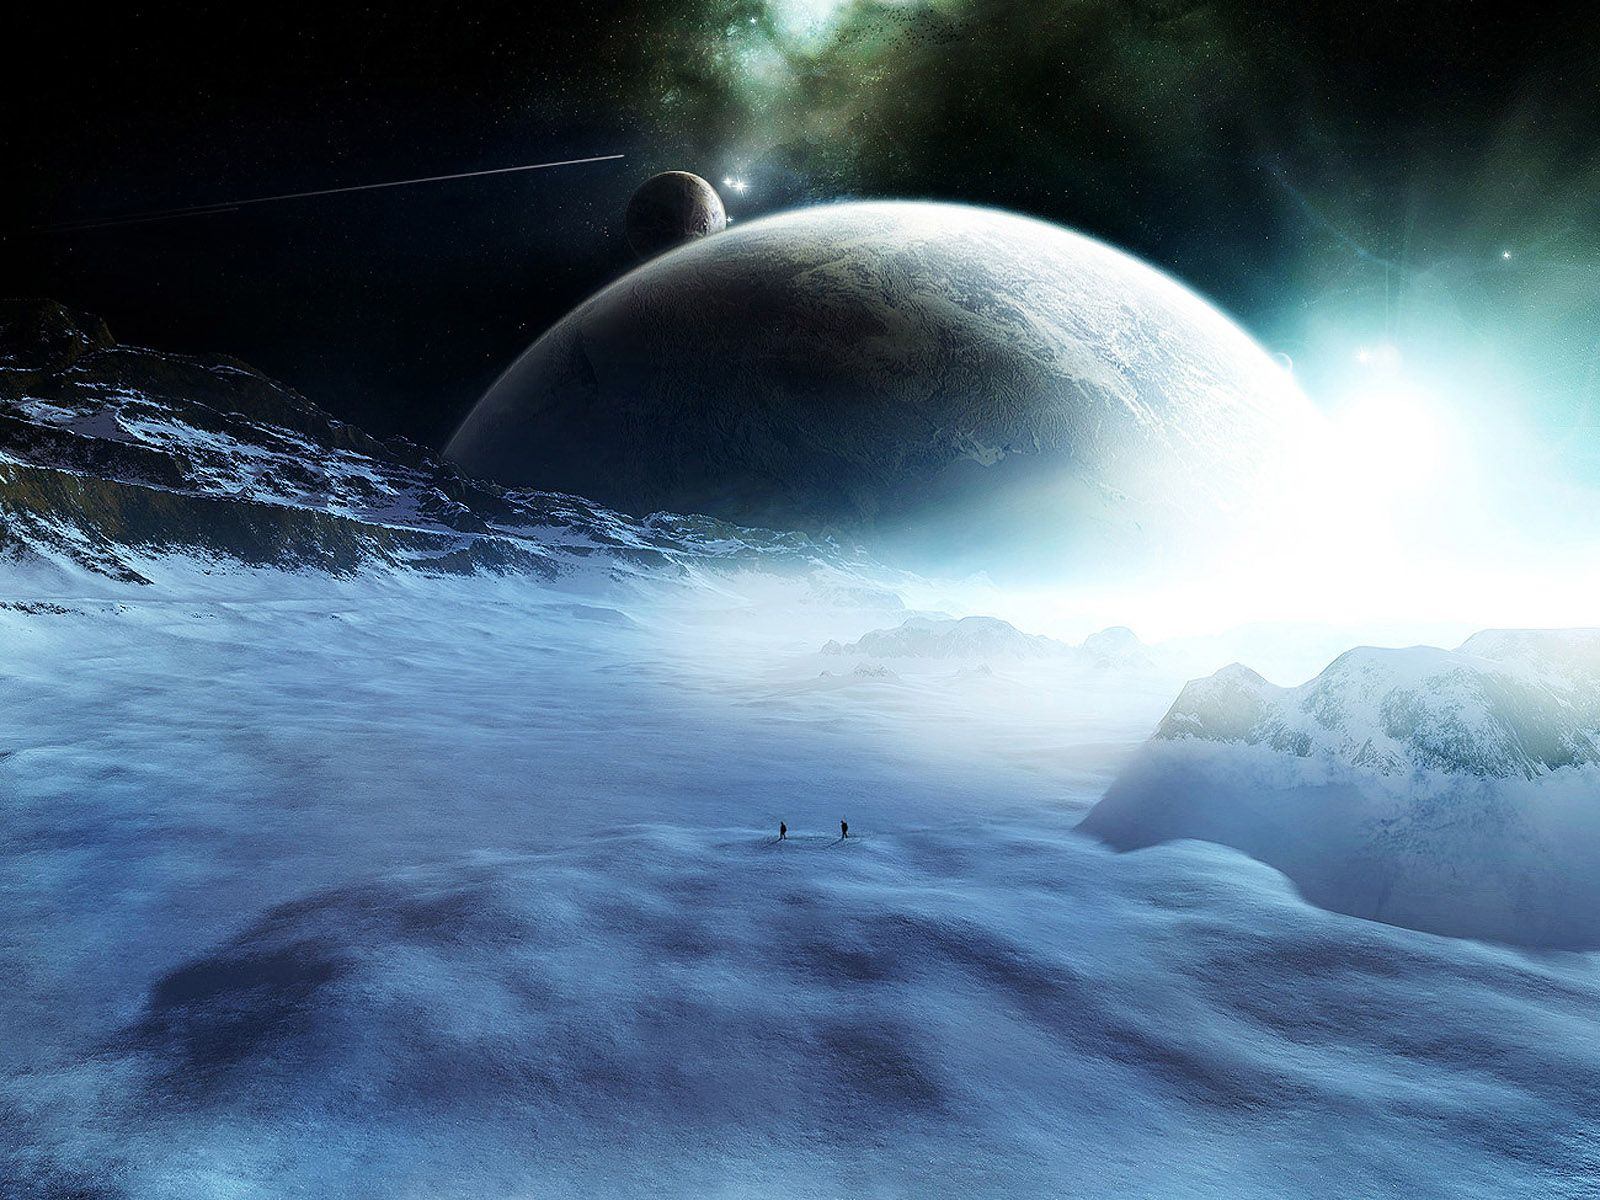 Hd wallpaper universe - Find This Pin And More On Universe Hd Wallpaper